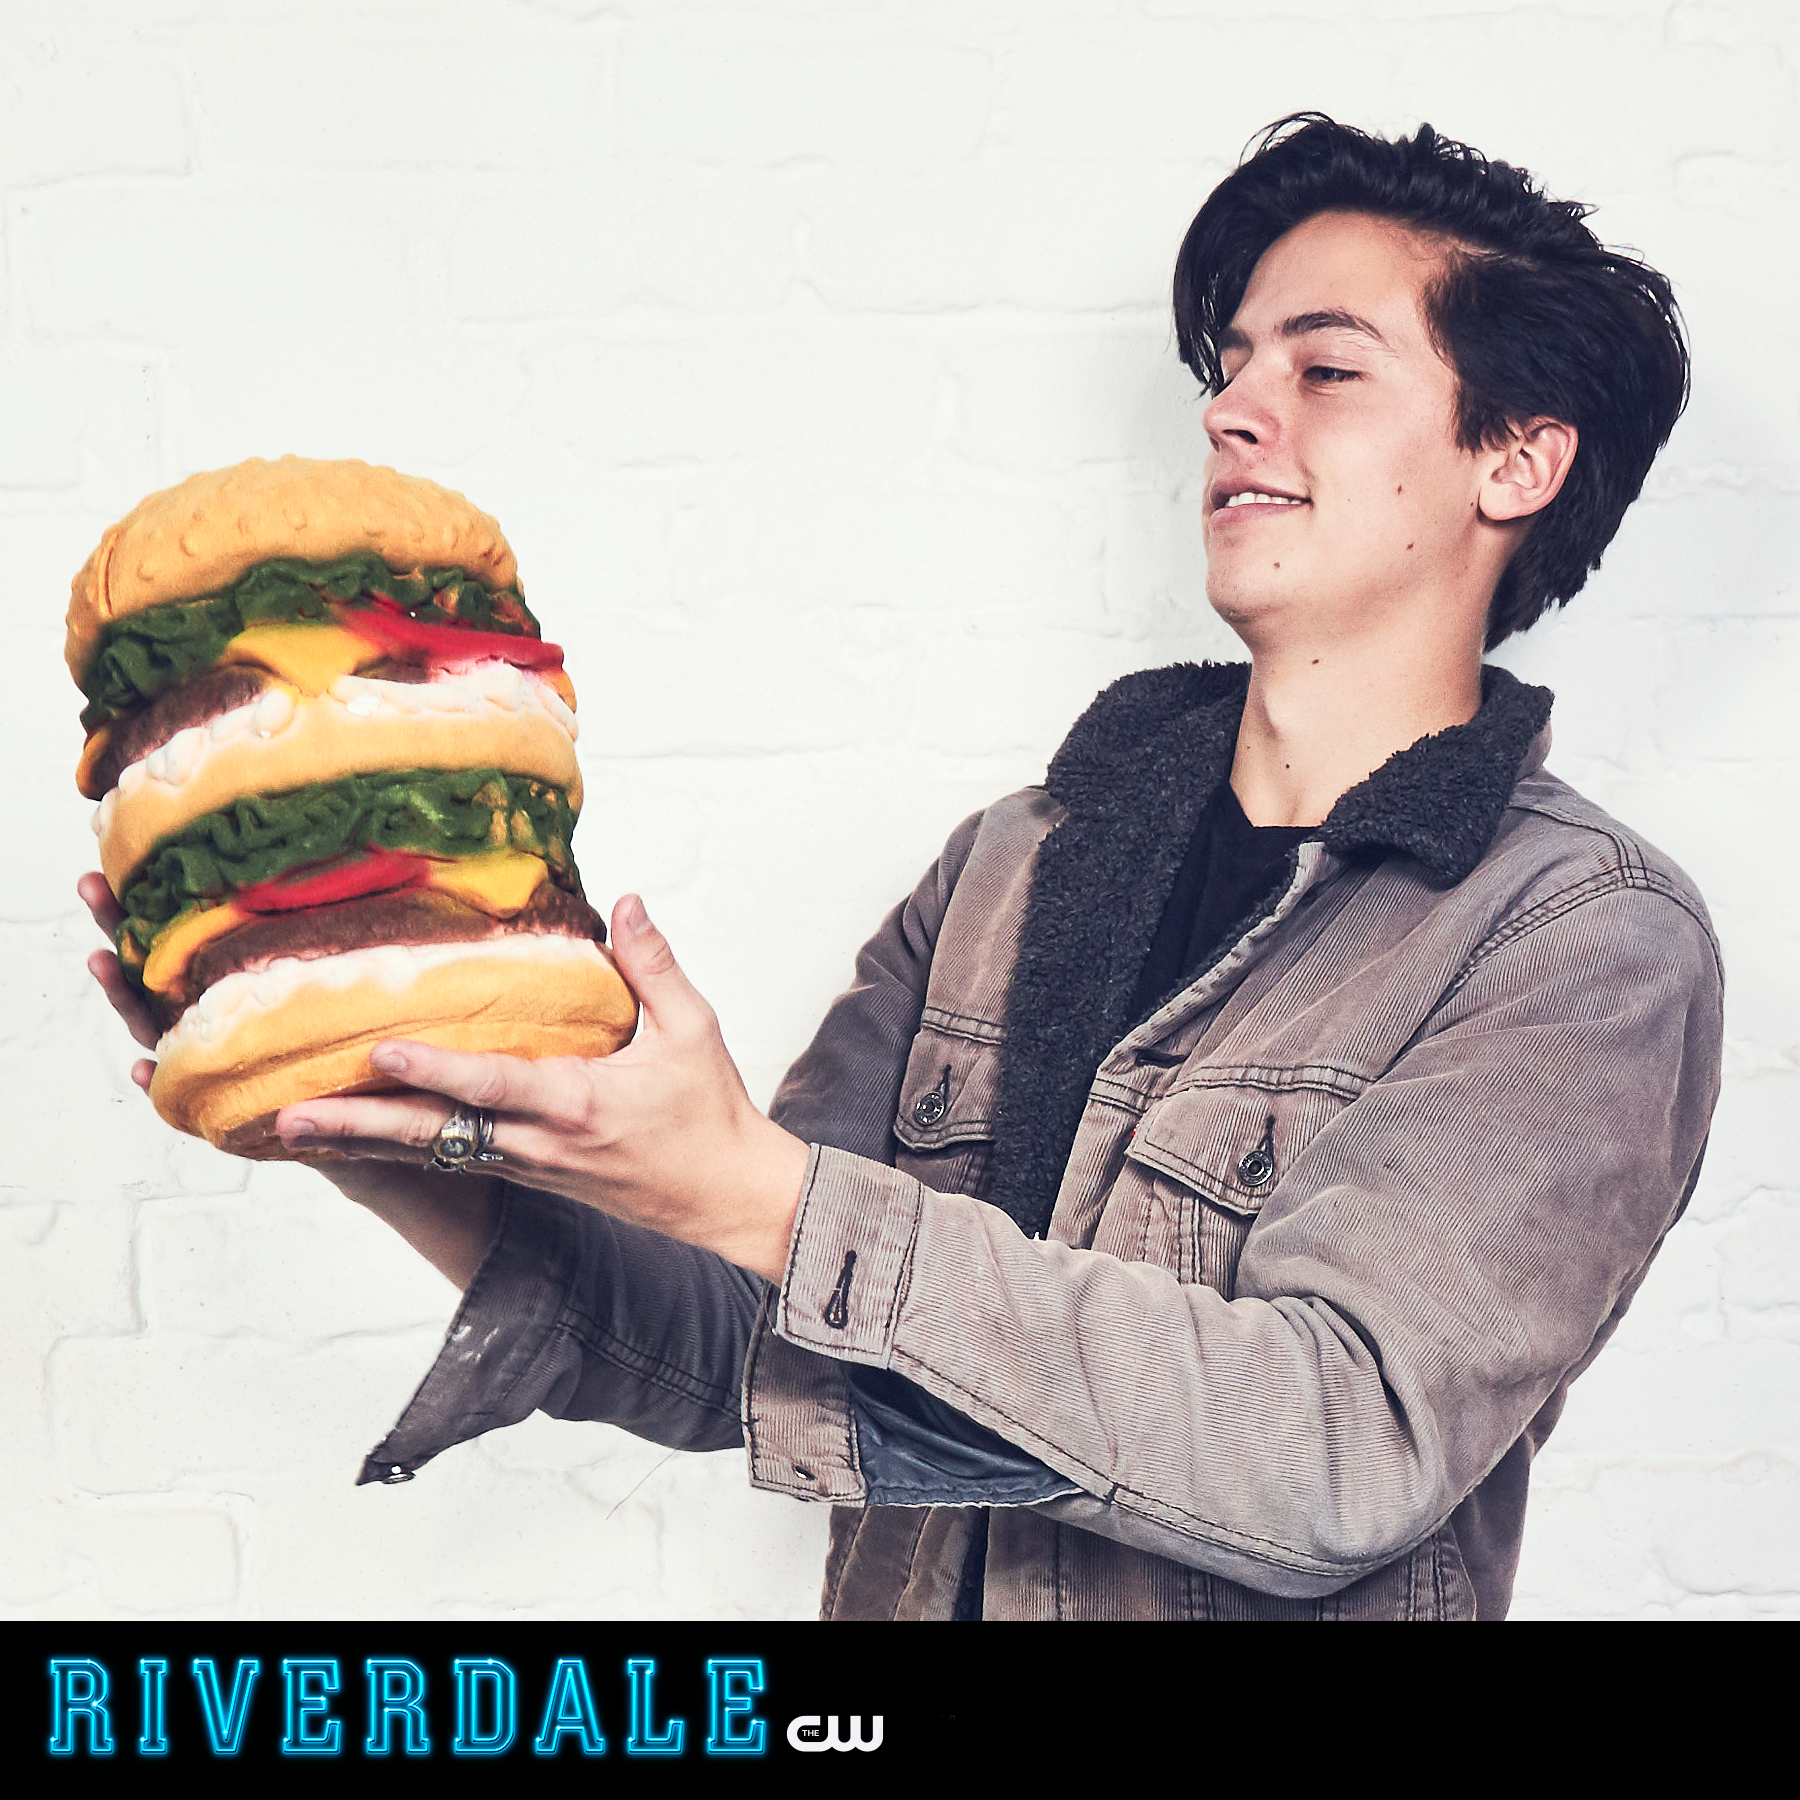 Archie Riverdale Wallpaper: Classic Jughead. See How Cole Sprouse Becomes The Comic